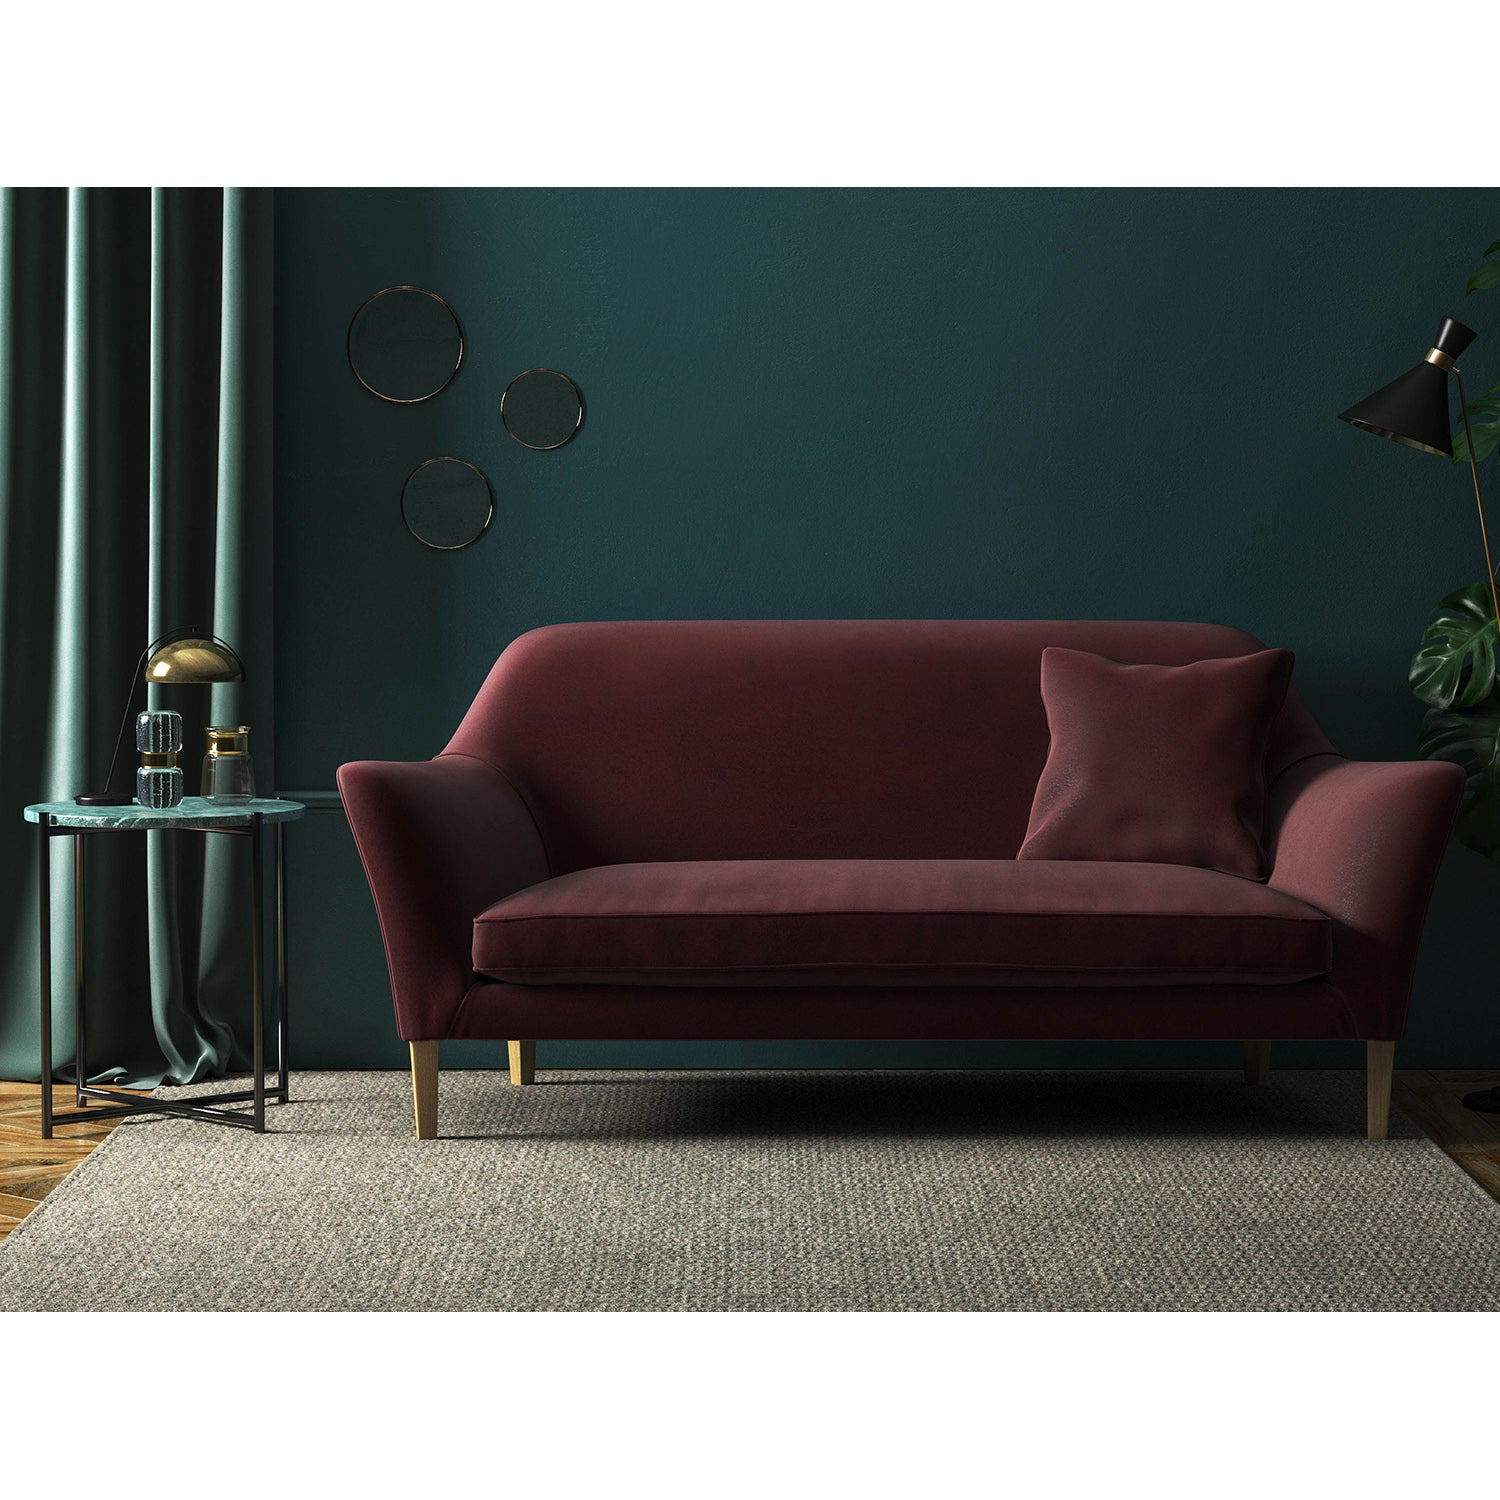 Sofa in a dark copper plain velvet upholstery fabric with a stain resistant finish